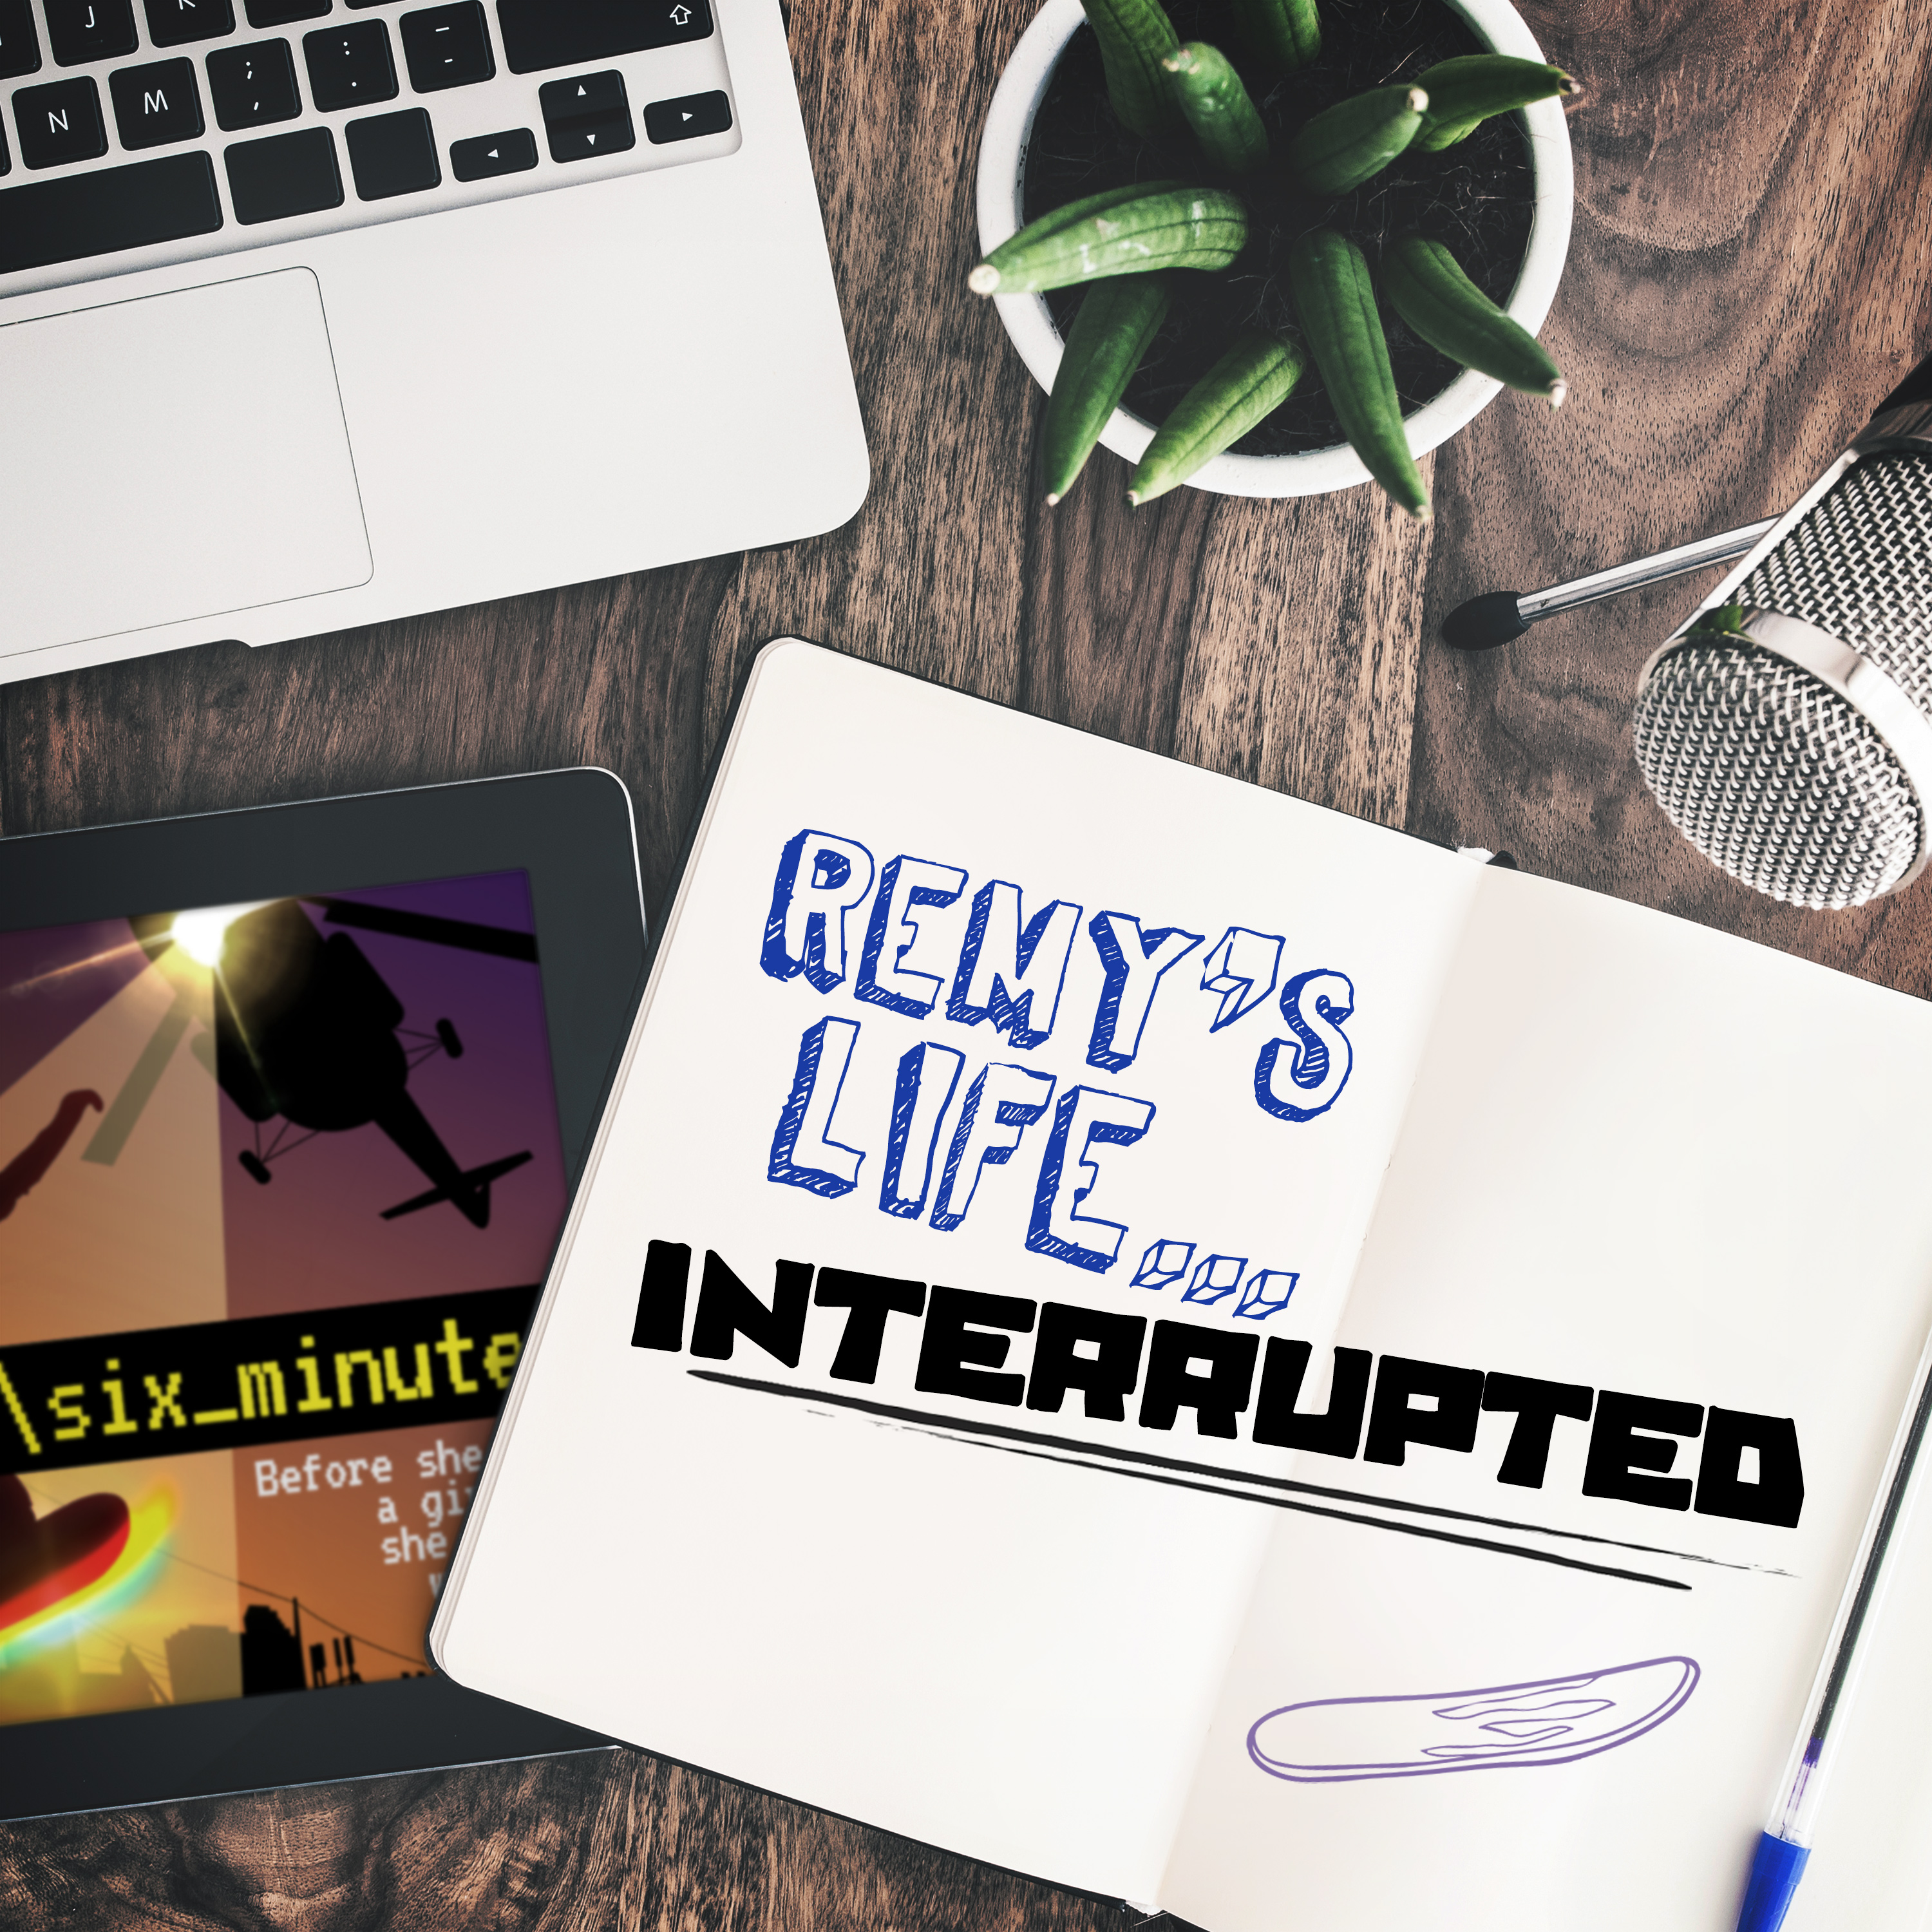 Remy's Life Interrupted: EP83